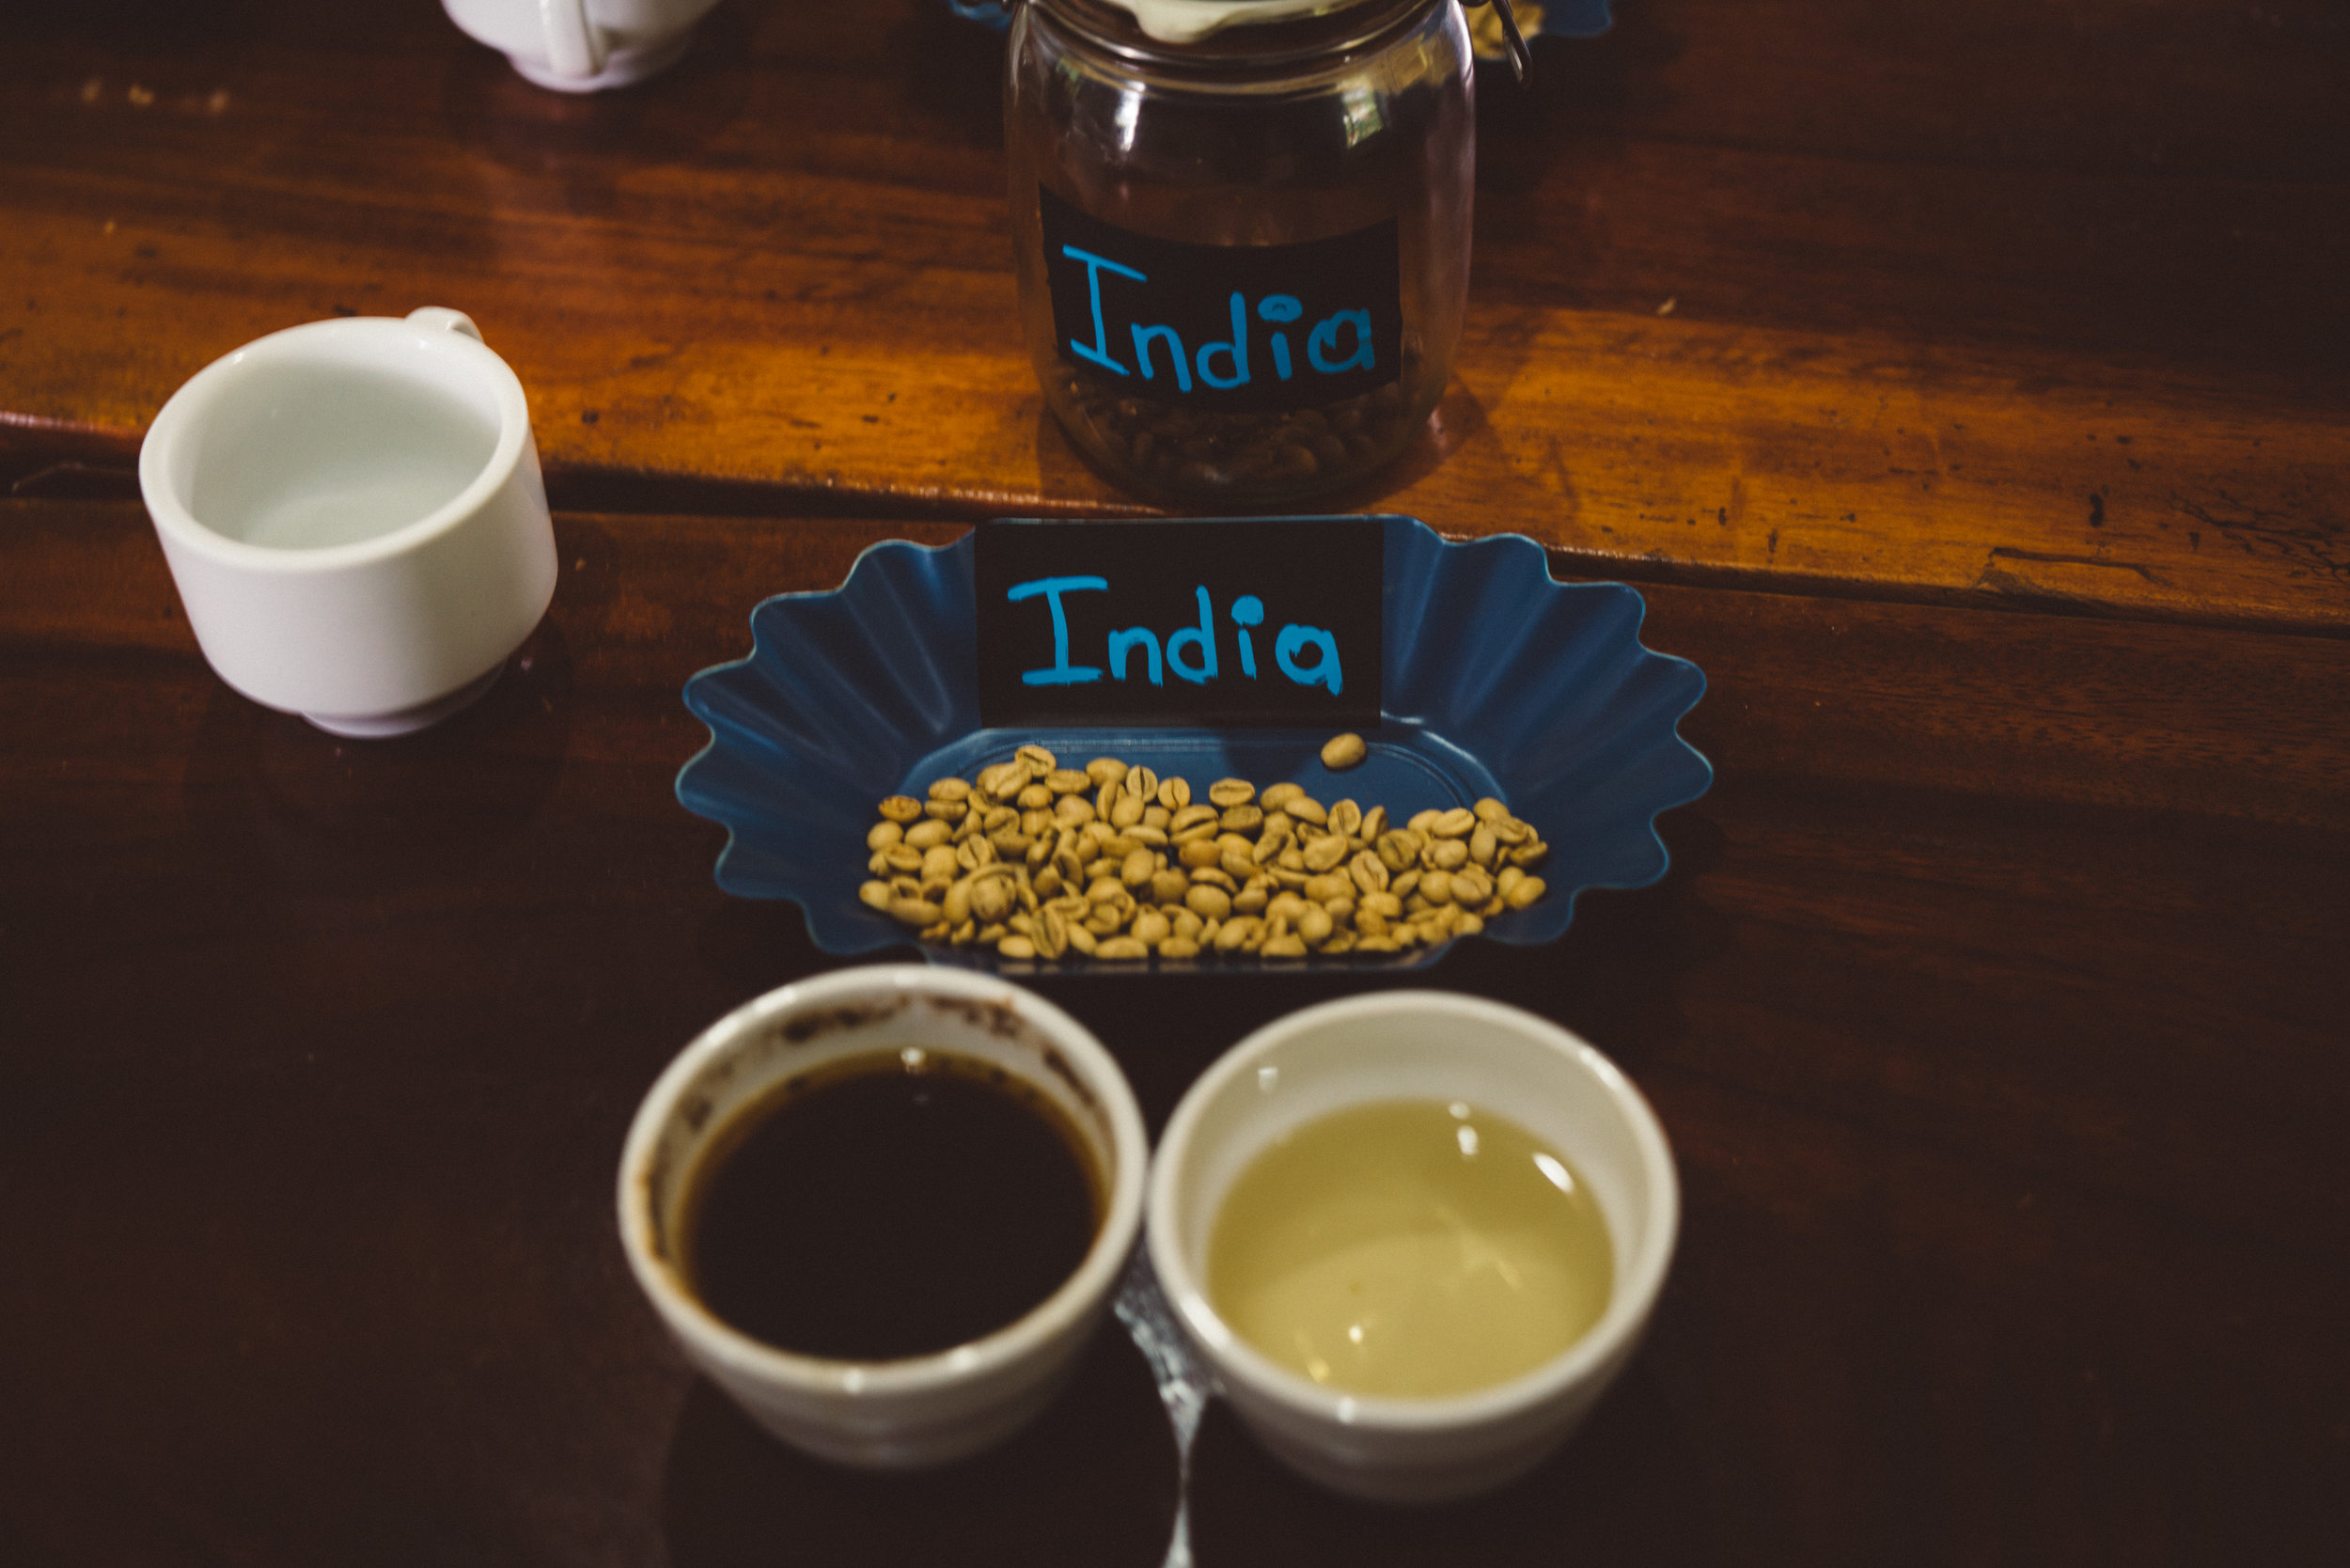 The first coffee we 'cupped' were these Indian beans, which had a very strong and unpleasant burnt taste. Is it a coincidence that the bad tasting coffee they chose was the only non-Nicaraguan one? Hmm...